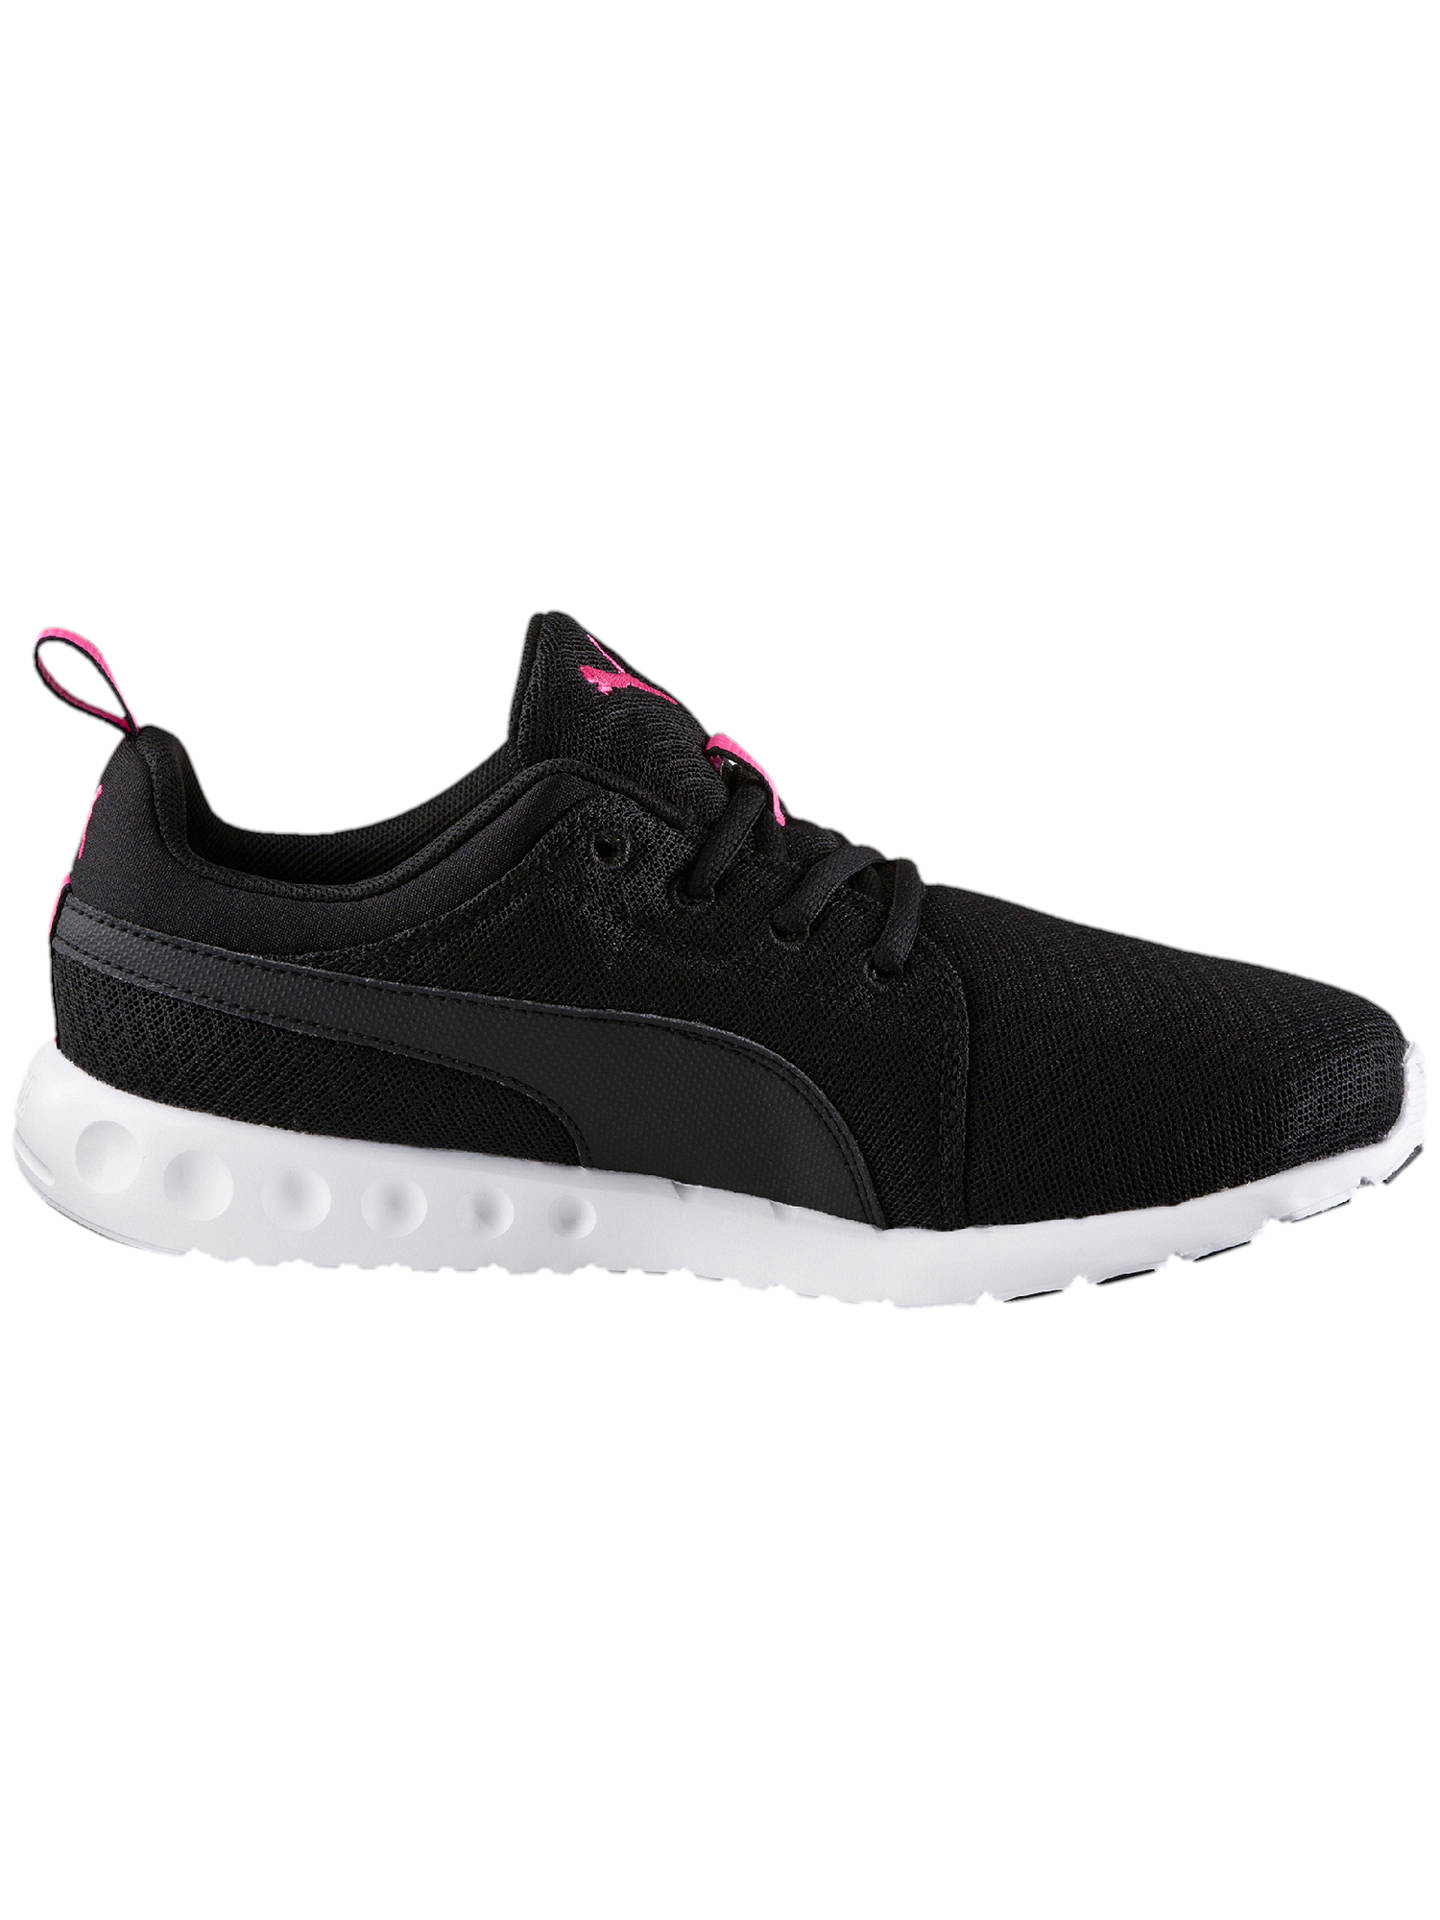 BuyPuma Carson Mesh Women s Running Shoes 3e71e2f5a